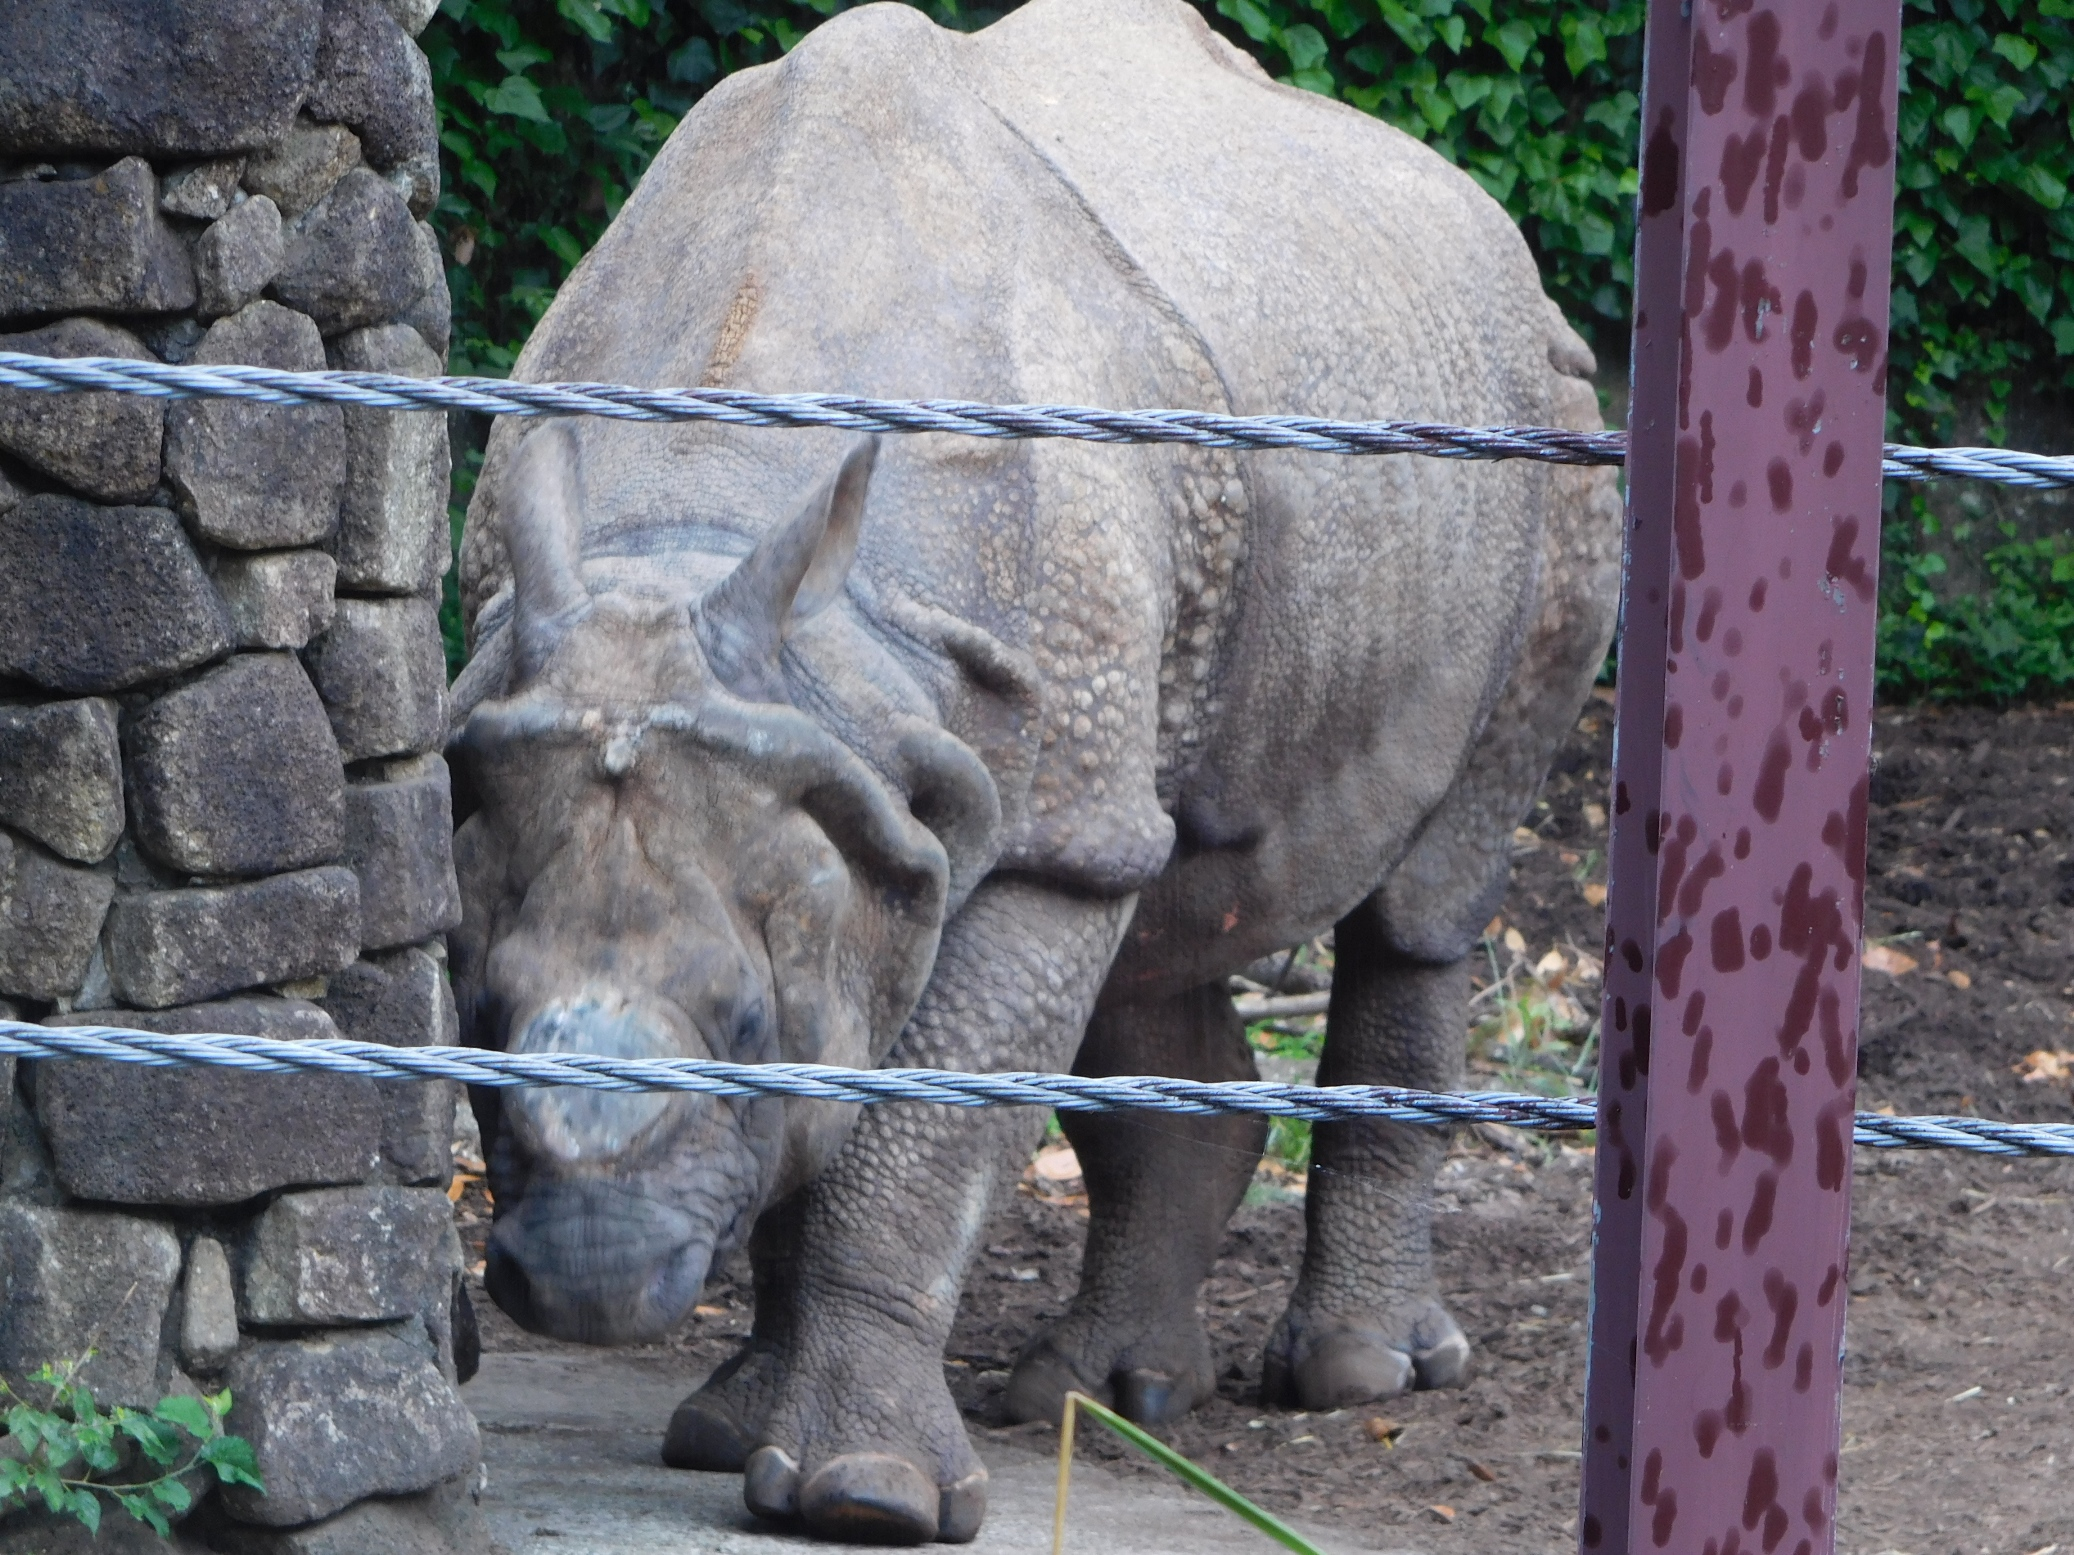 Life-sized Panel Picture of Indian Rhino in a Japanese Zoo - Rhinos